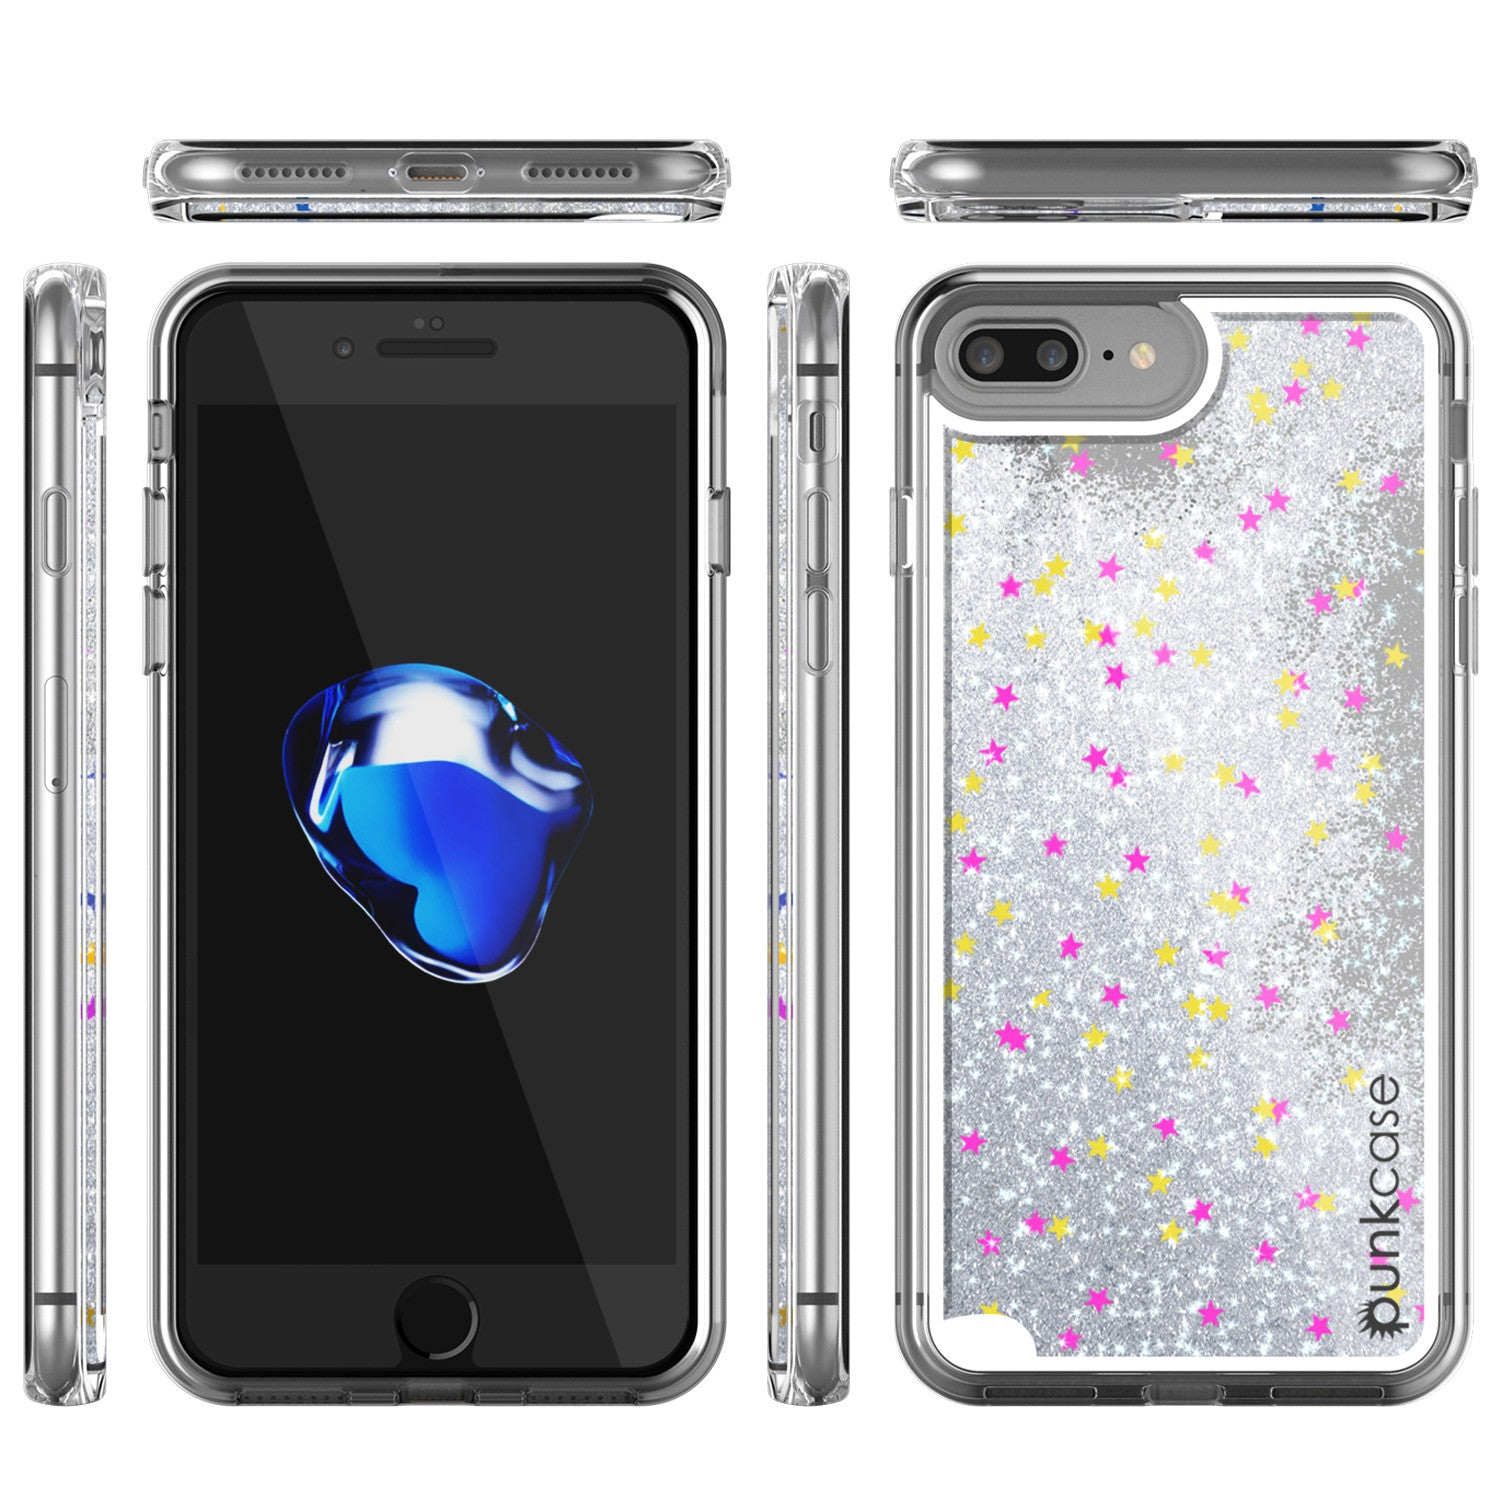 iPhone 7+Plus Case, PunkCase LIQUID Silver Series, Protective Dual Layer Floating Glitter Cover